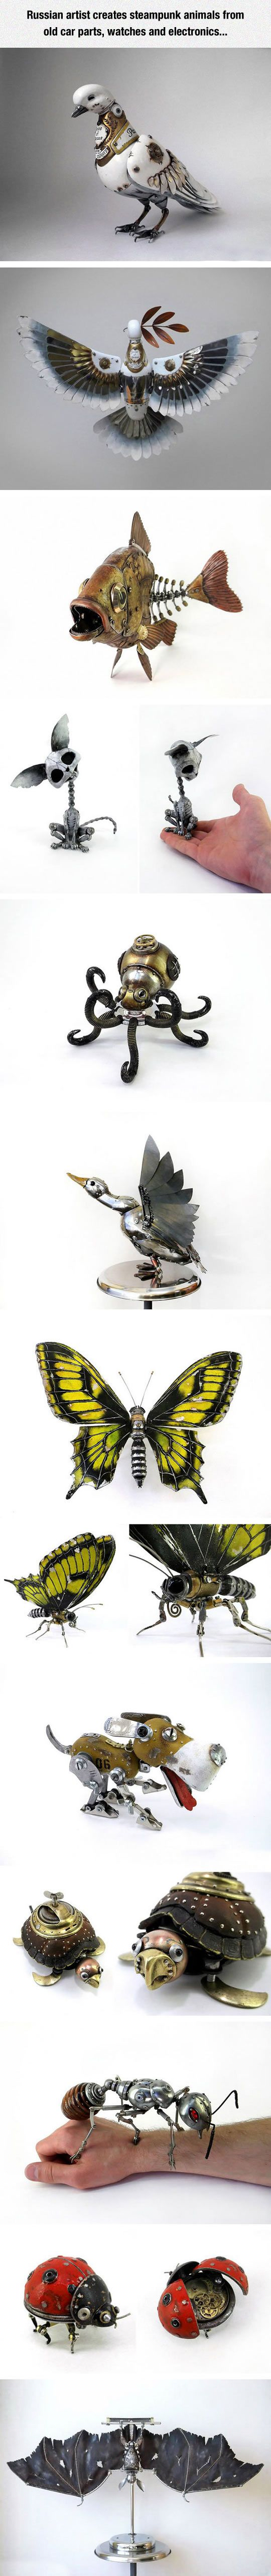 Steampunk animals from car parts